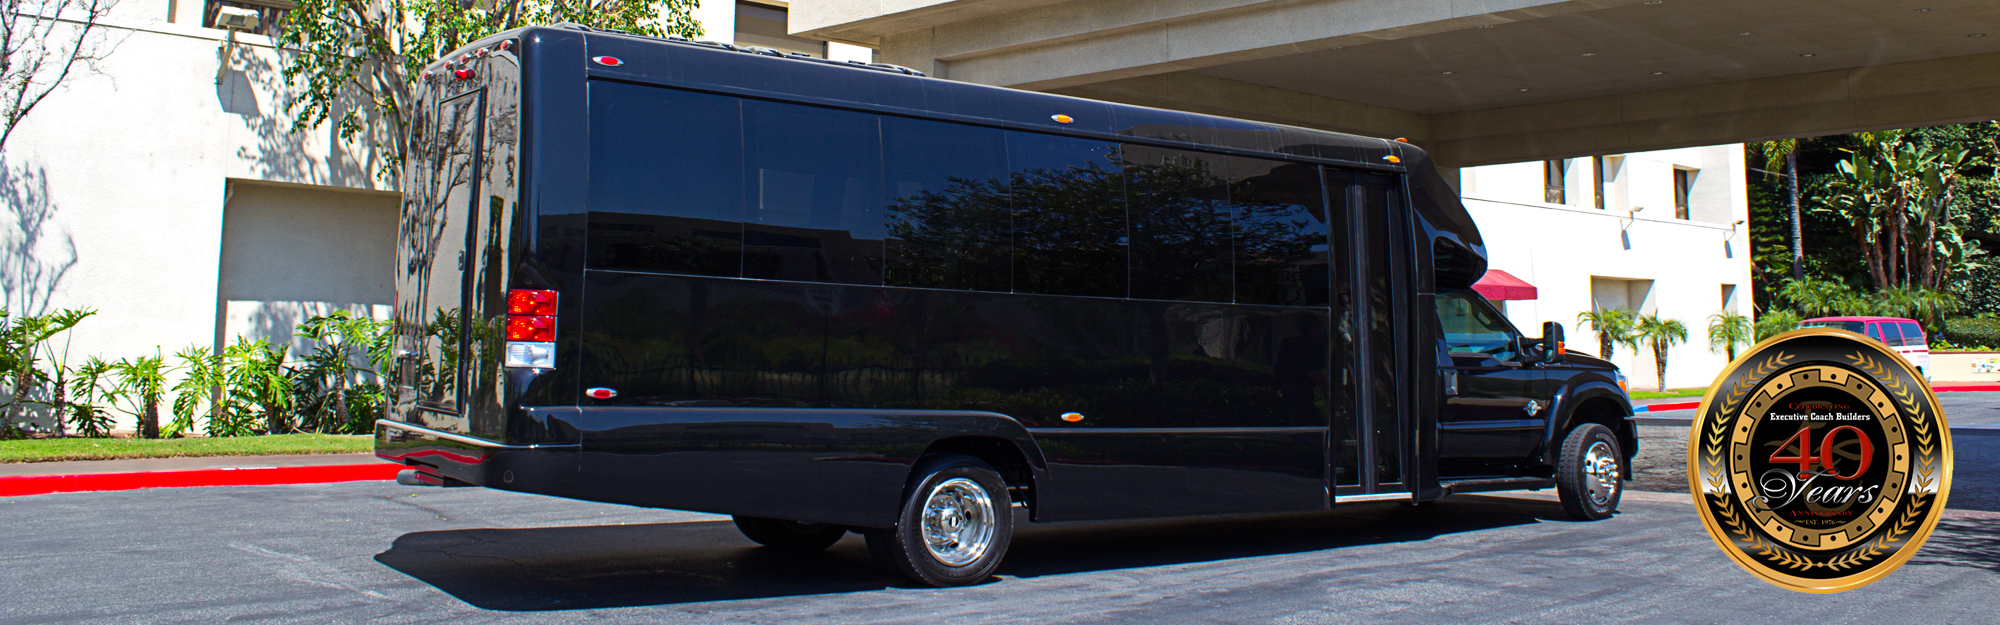 Executive Bus Builders Slider Image